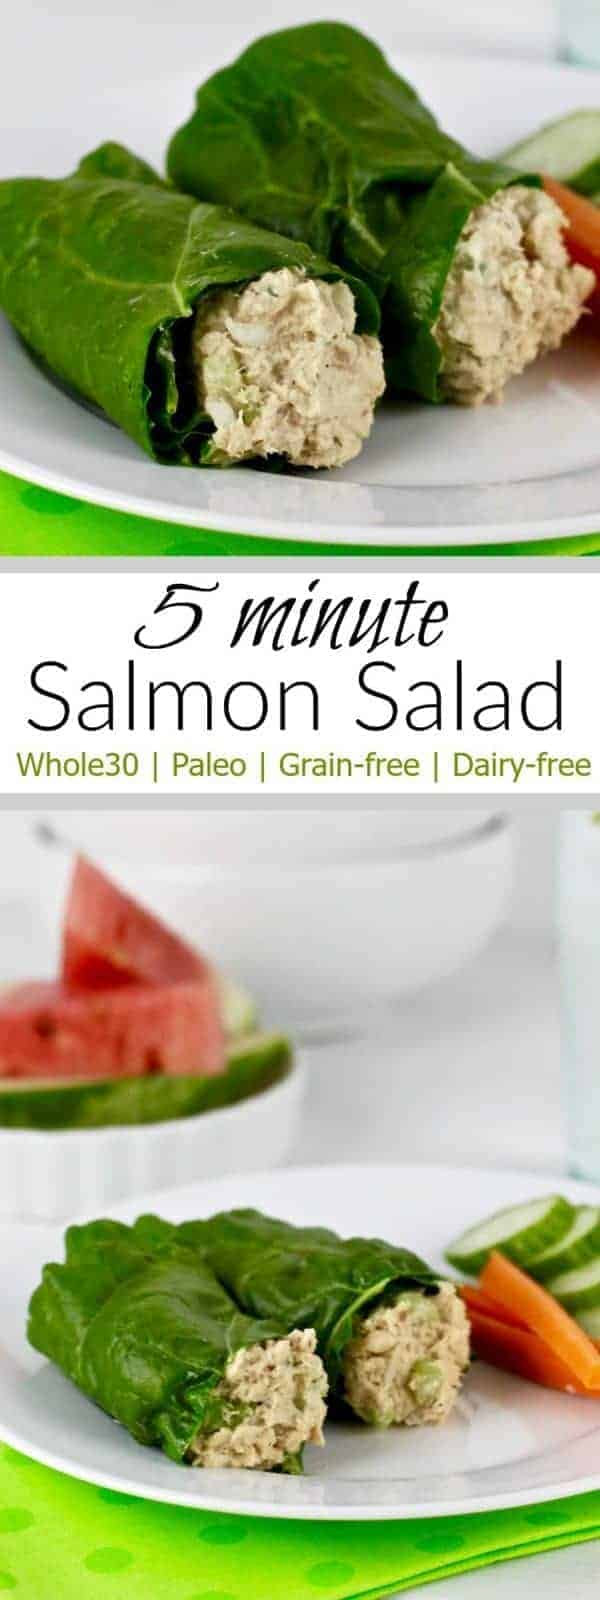 5 Minute Salmon Salad | healthy salmon recipes | recipes using salmon | Whole30 approved recipes | Whole30 lunch recipes | Whole30 seafood recipes | paleo lunch recipes | paleo seafood recipes | paleo fish recipes | gluten free lunch recipes | gluten free seafood recipes || The Real Food Dietitians